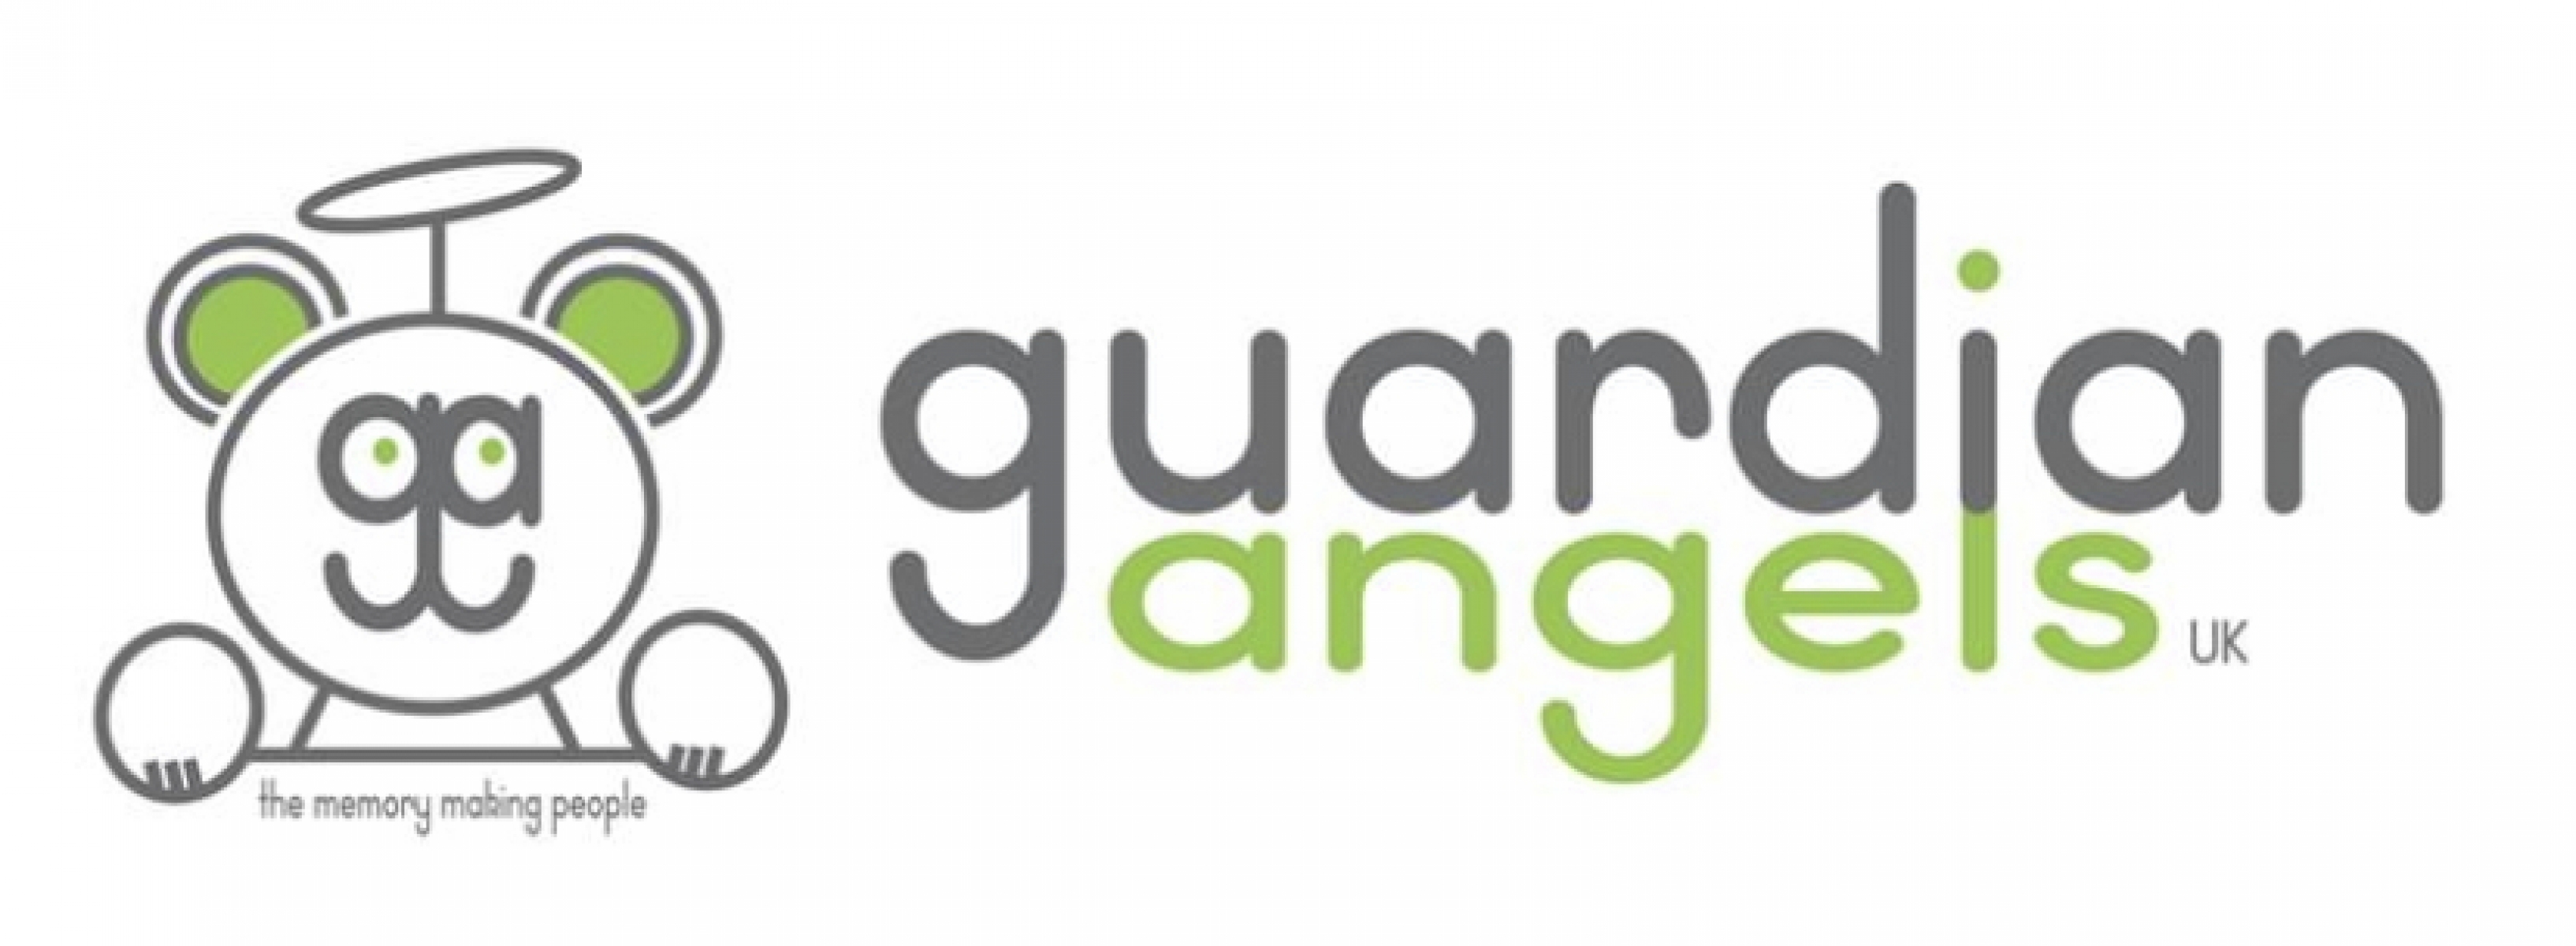 Guardian Angels UK eCards